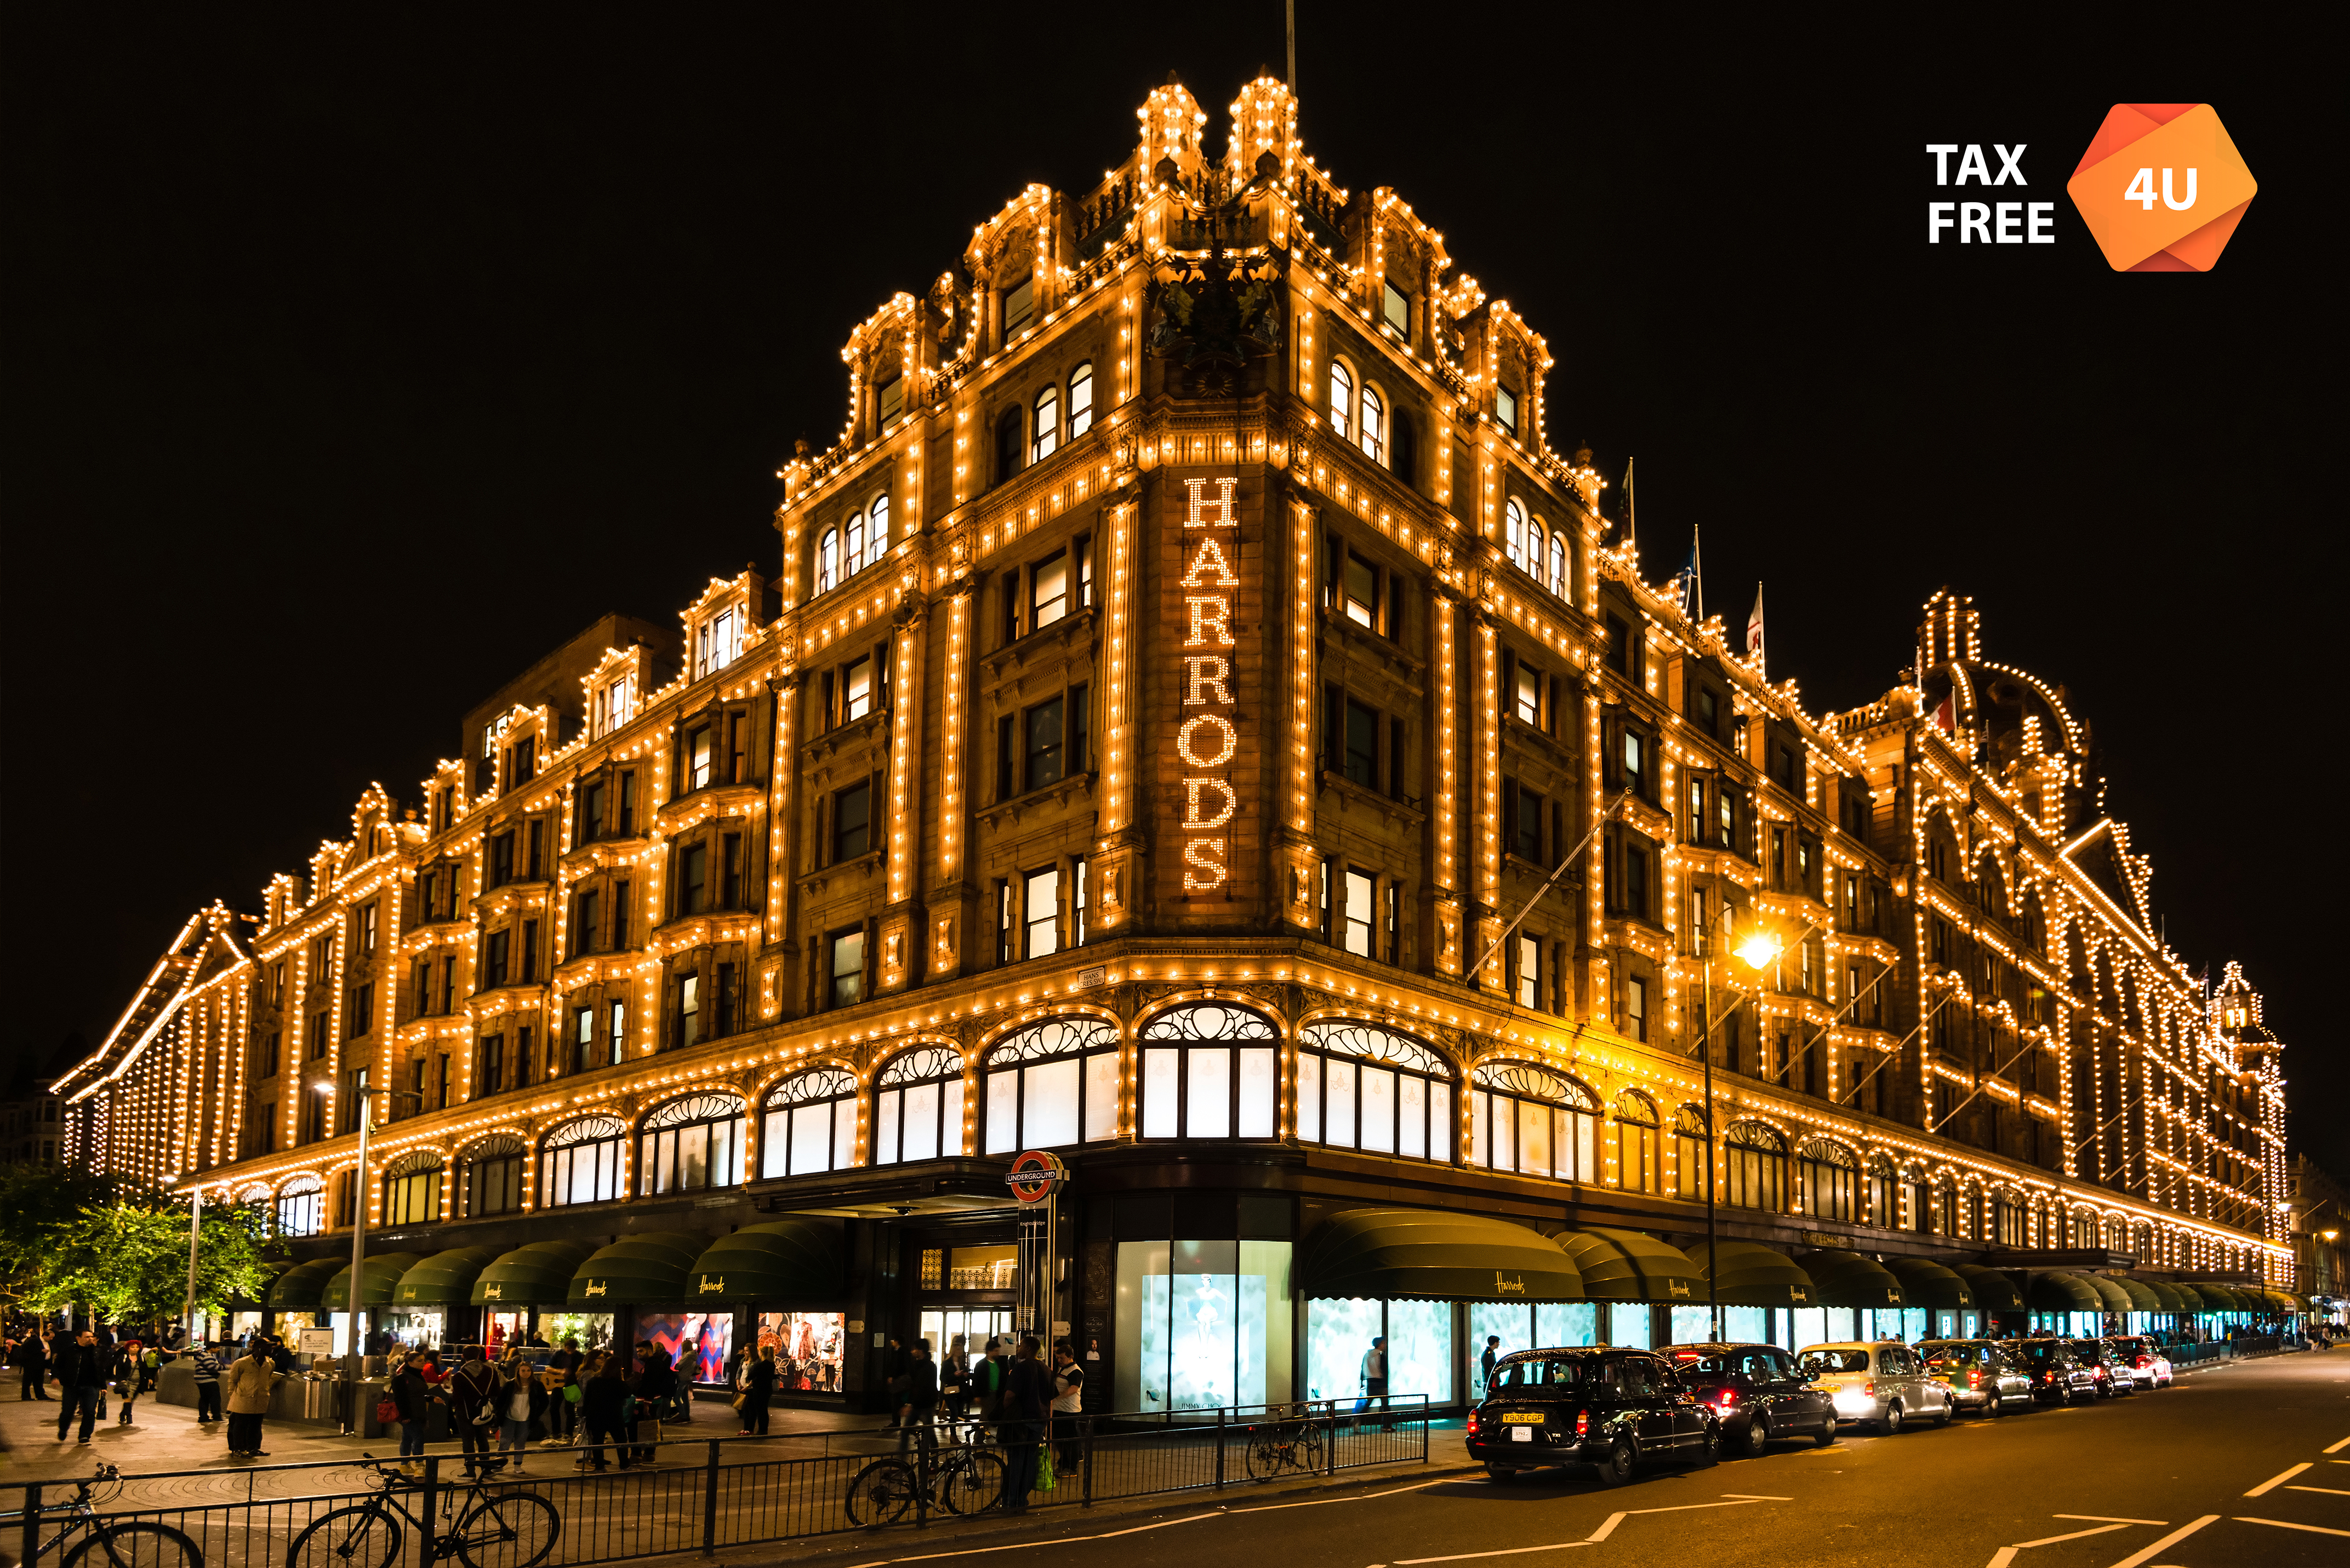 LONDON, UK - SEPTEMBER 25, 2014: The famous Harrods department store in the evening of September 25, 2014 at Knightsbridge in London, UK. Harrods is the biggest department store in Europe and offers over one million square feet of retail space, acting as a magnet for rich clients and numerous tourists throughout the year.